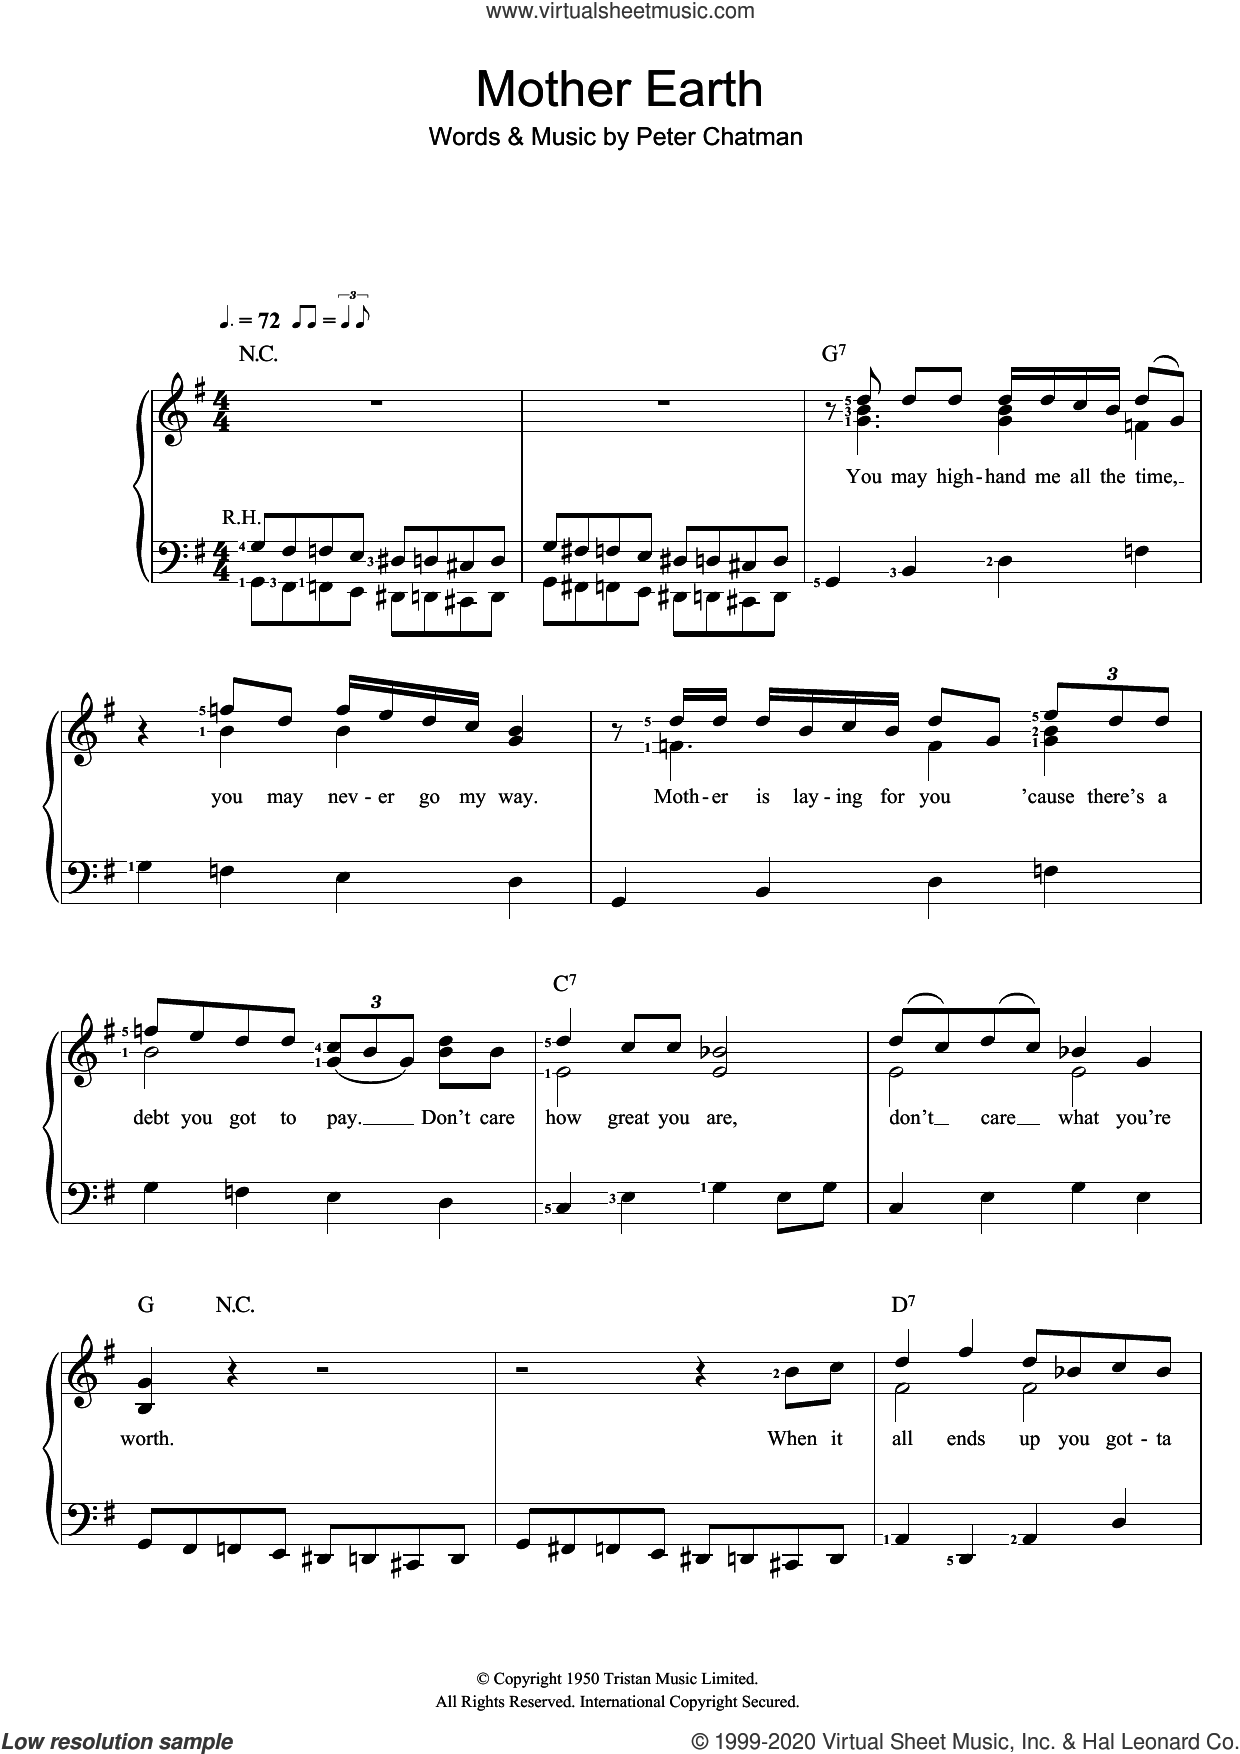 Mother Earth sheet music for voice and piano by Memphis Slim and Peter Chatman, intermediate skill level